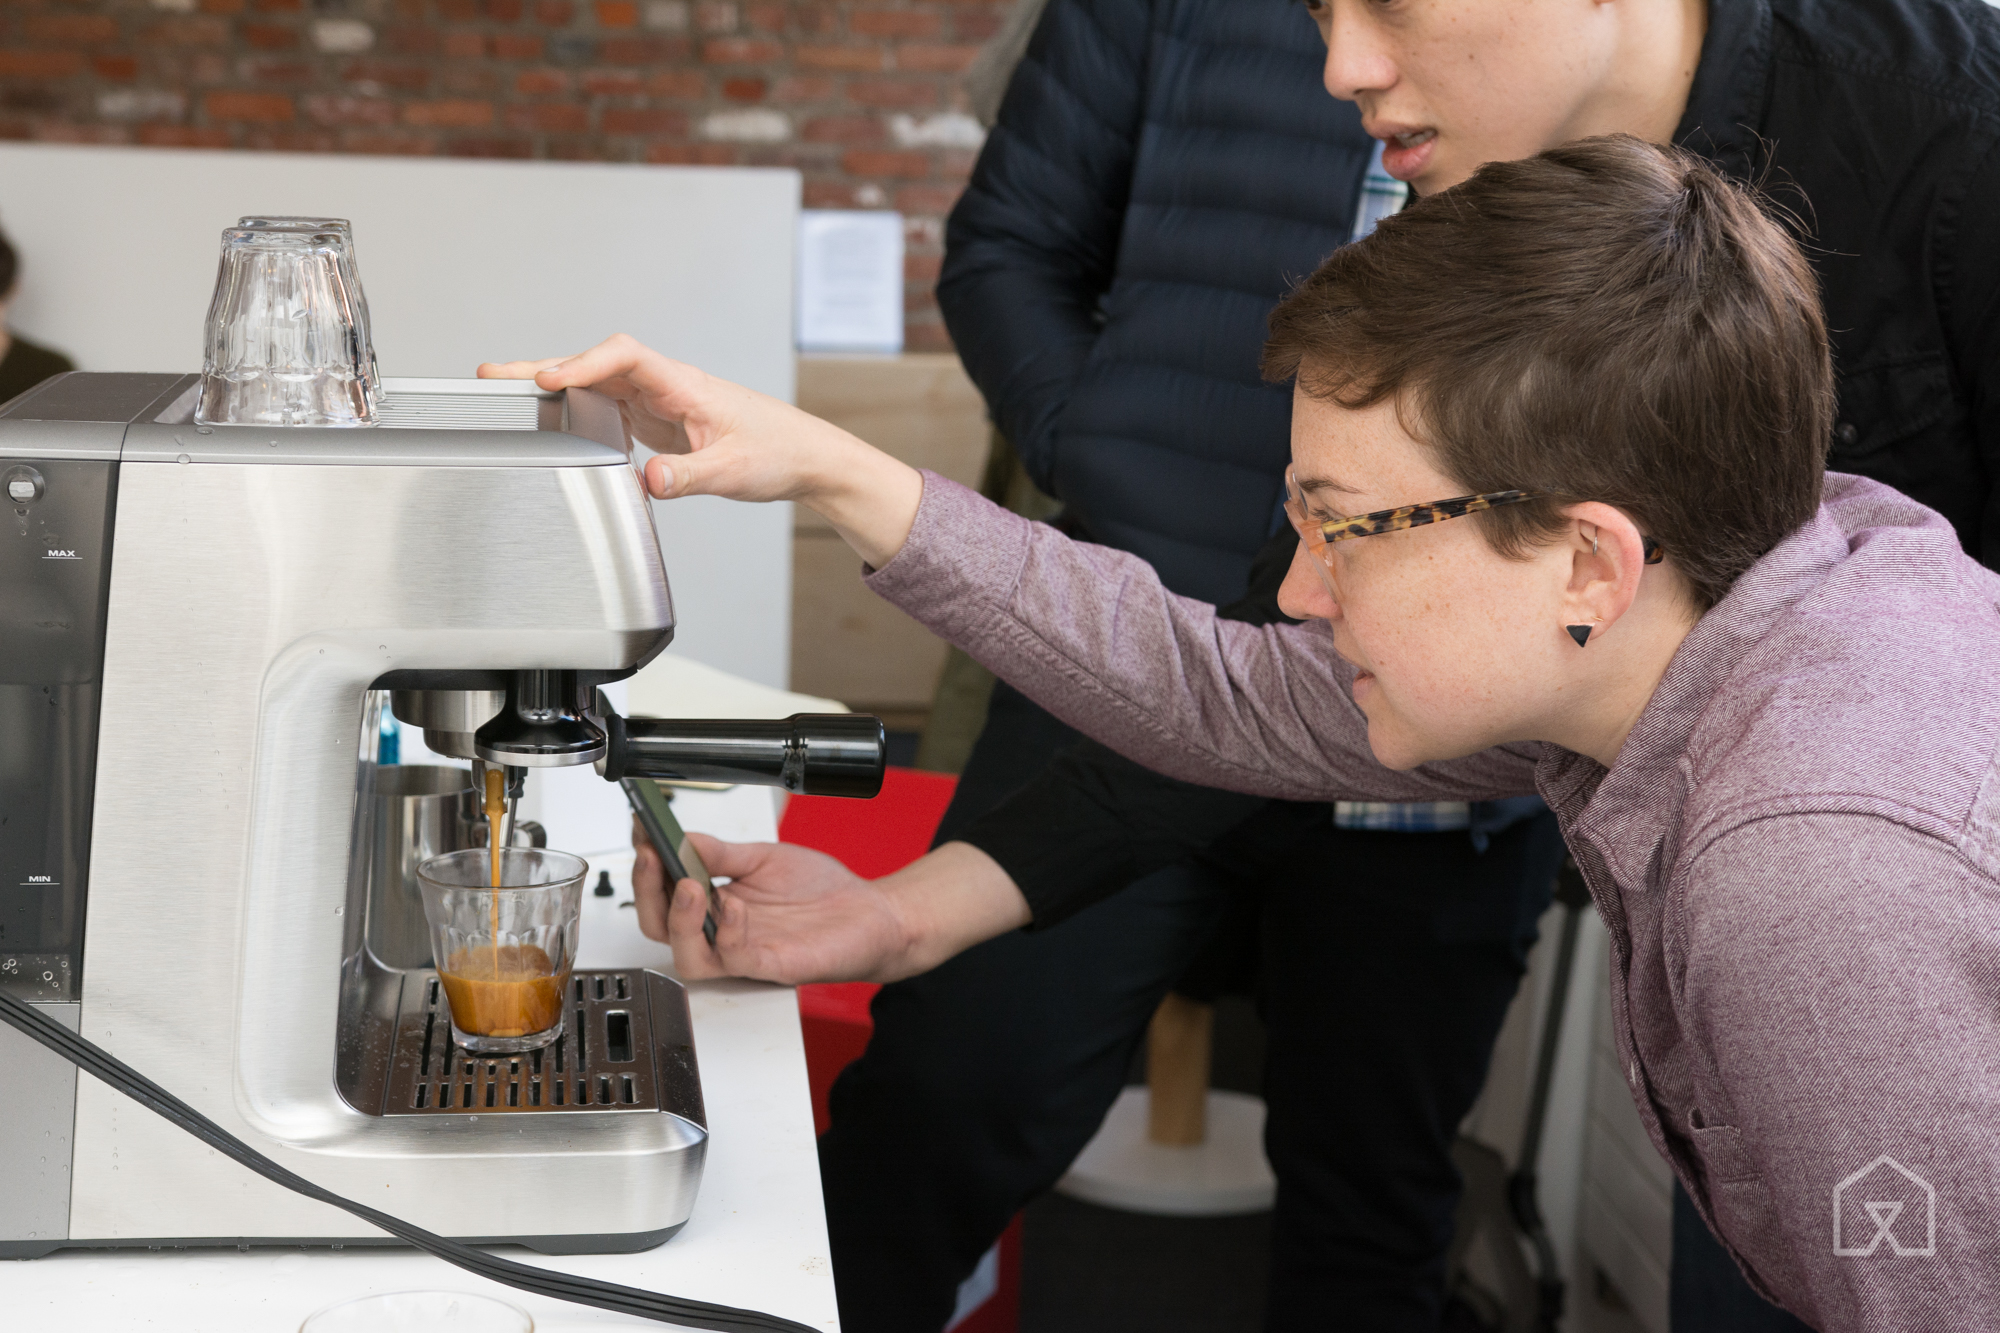 The best espresso machine, grinder and accessories for beginners